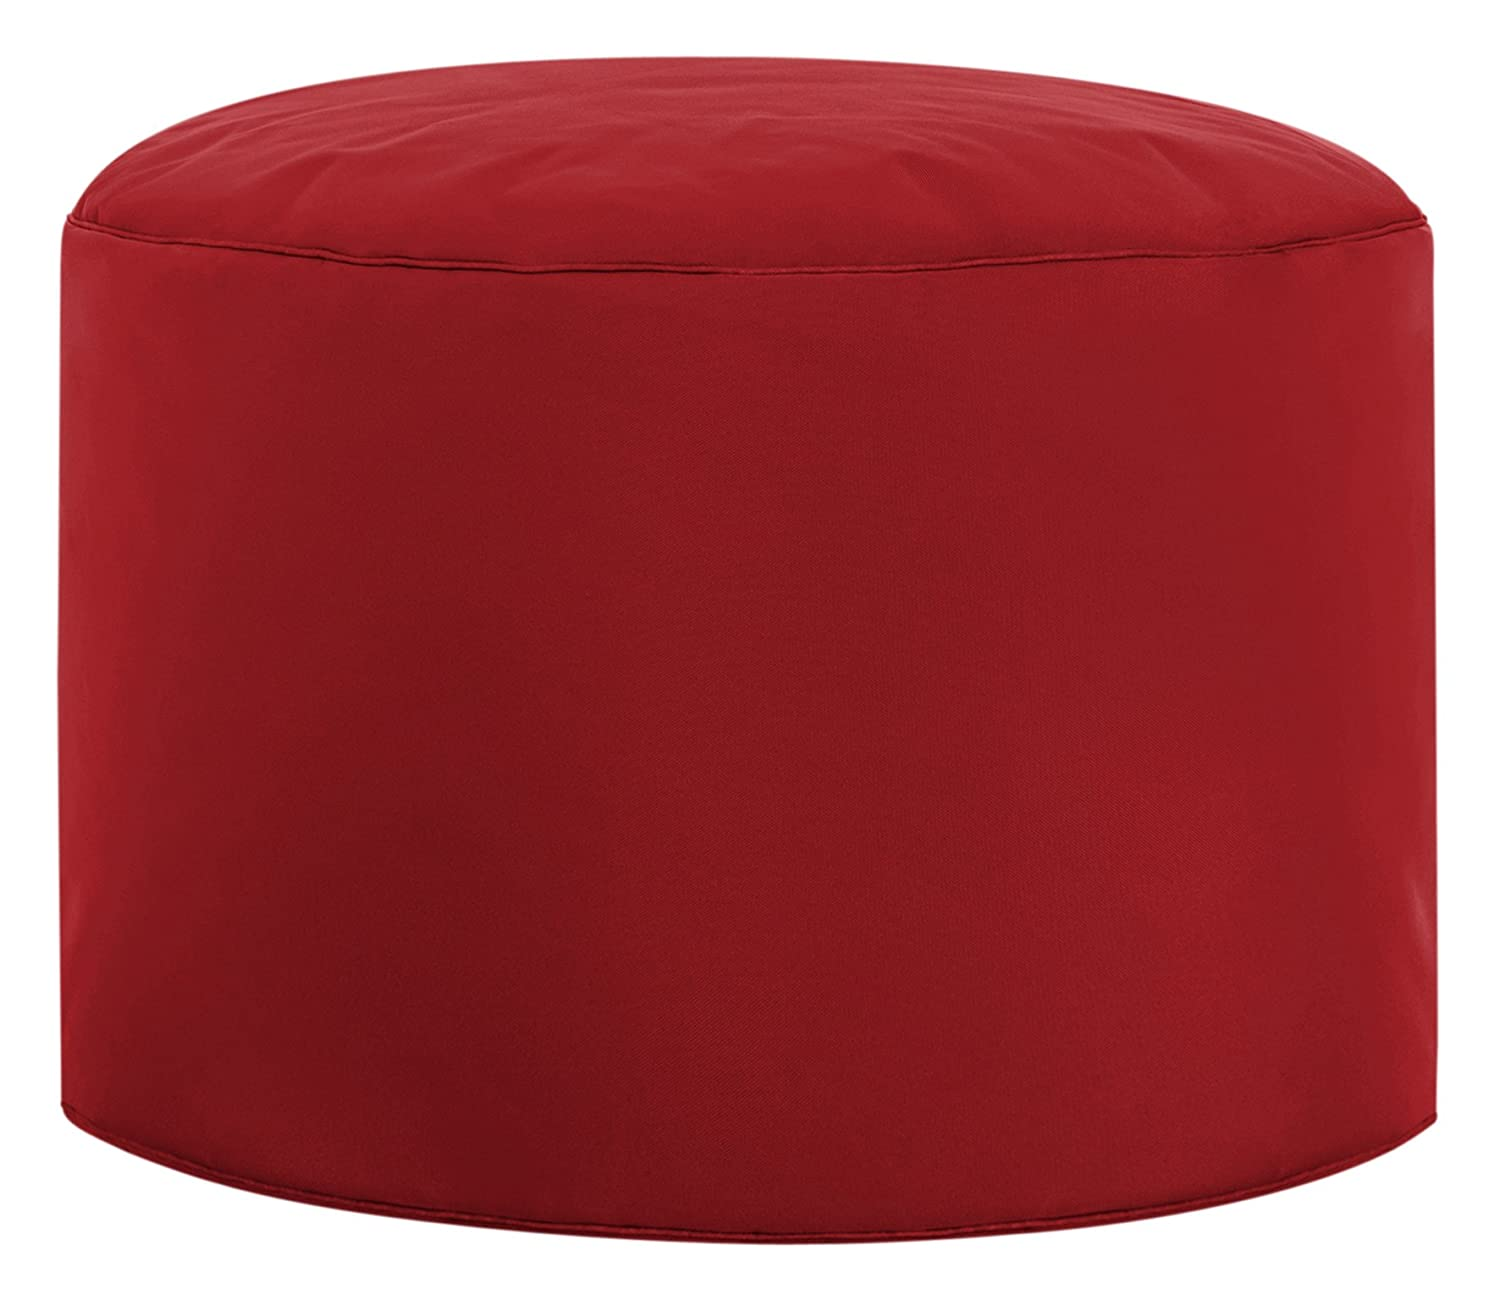 GOUCHEE DESIGN Dotcom Collection Contemporary Polyester Upholstered Round Pouf/Ottoman, Black B2C International S2842101